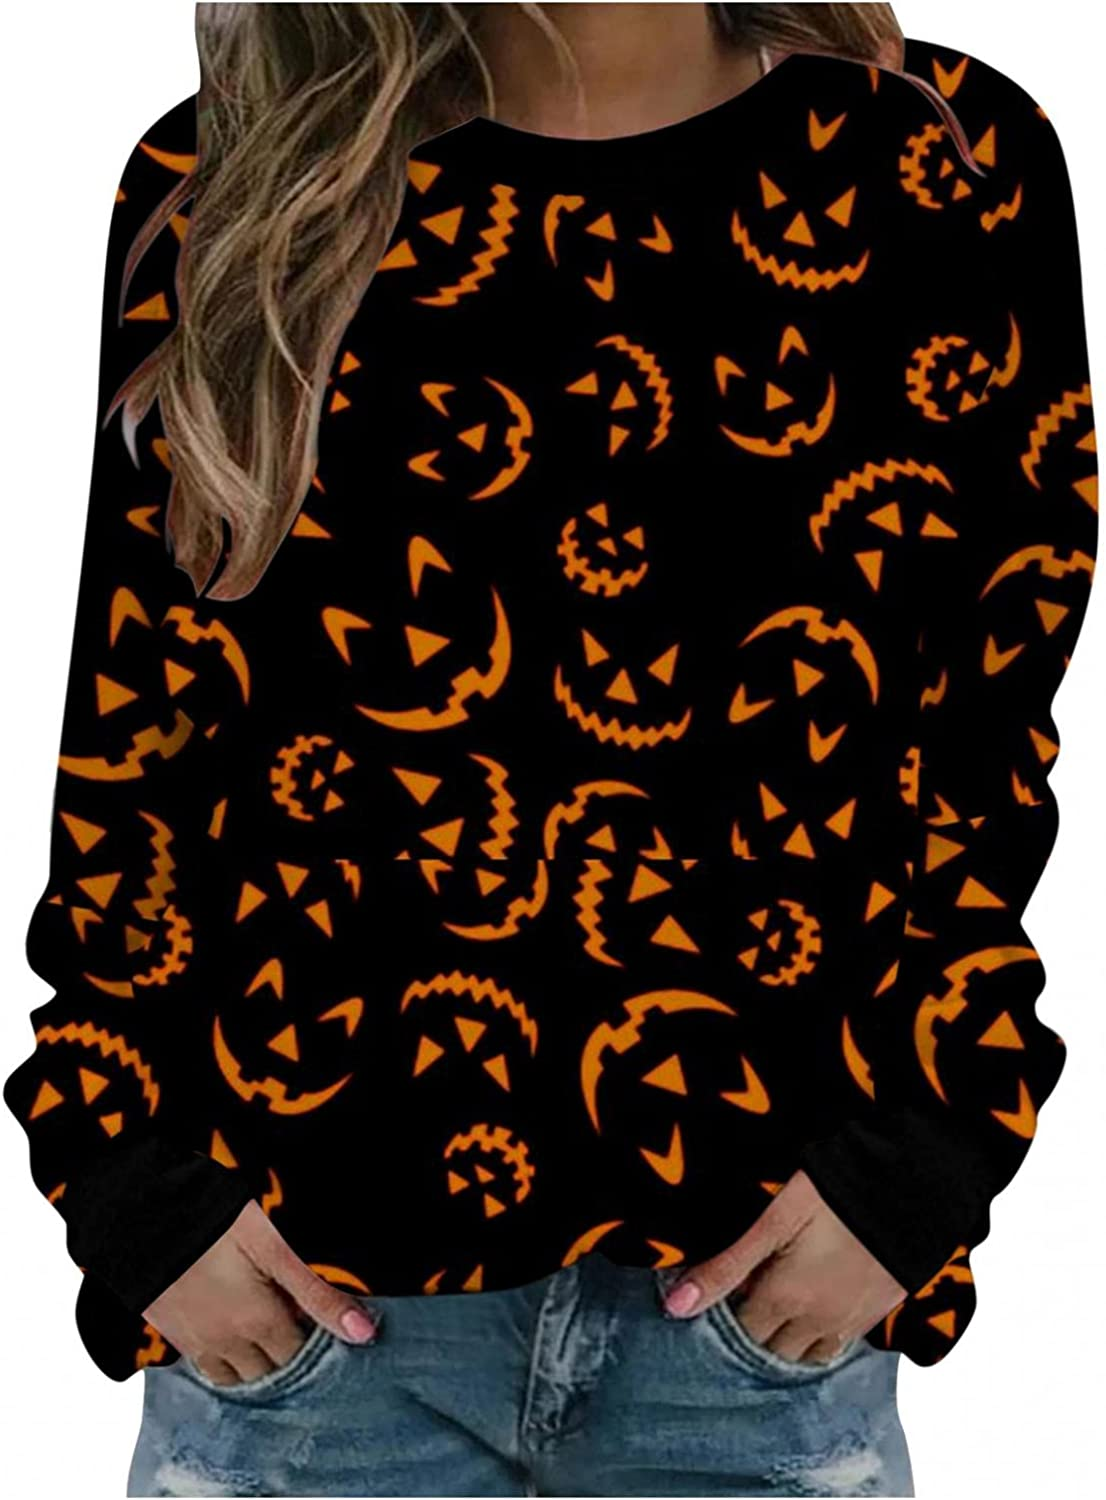 Haheyrte Sweatshirts for Womens Womens Pumpkin Face Ghost Printed Pullover Tops Casual Long Sleeve O Neck Shirts Sweaters